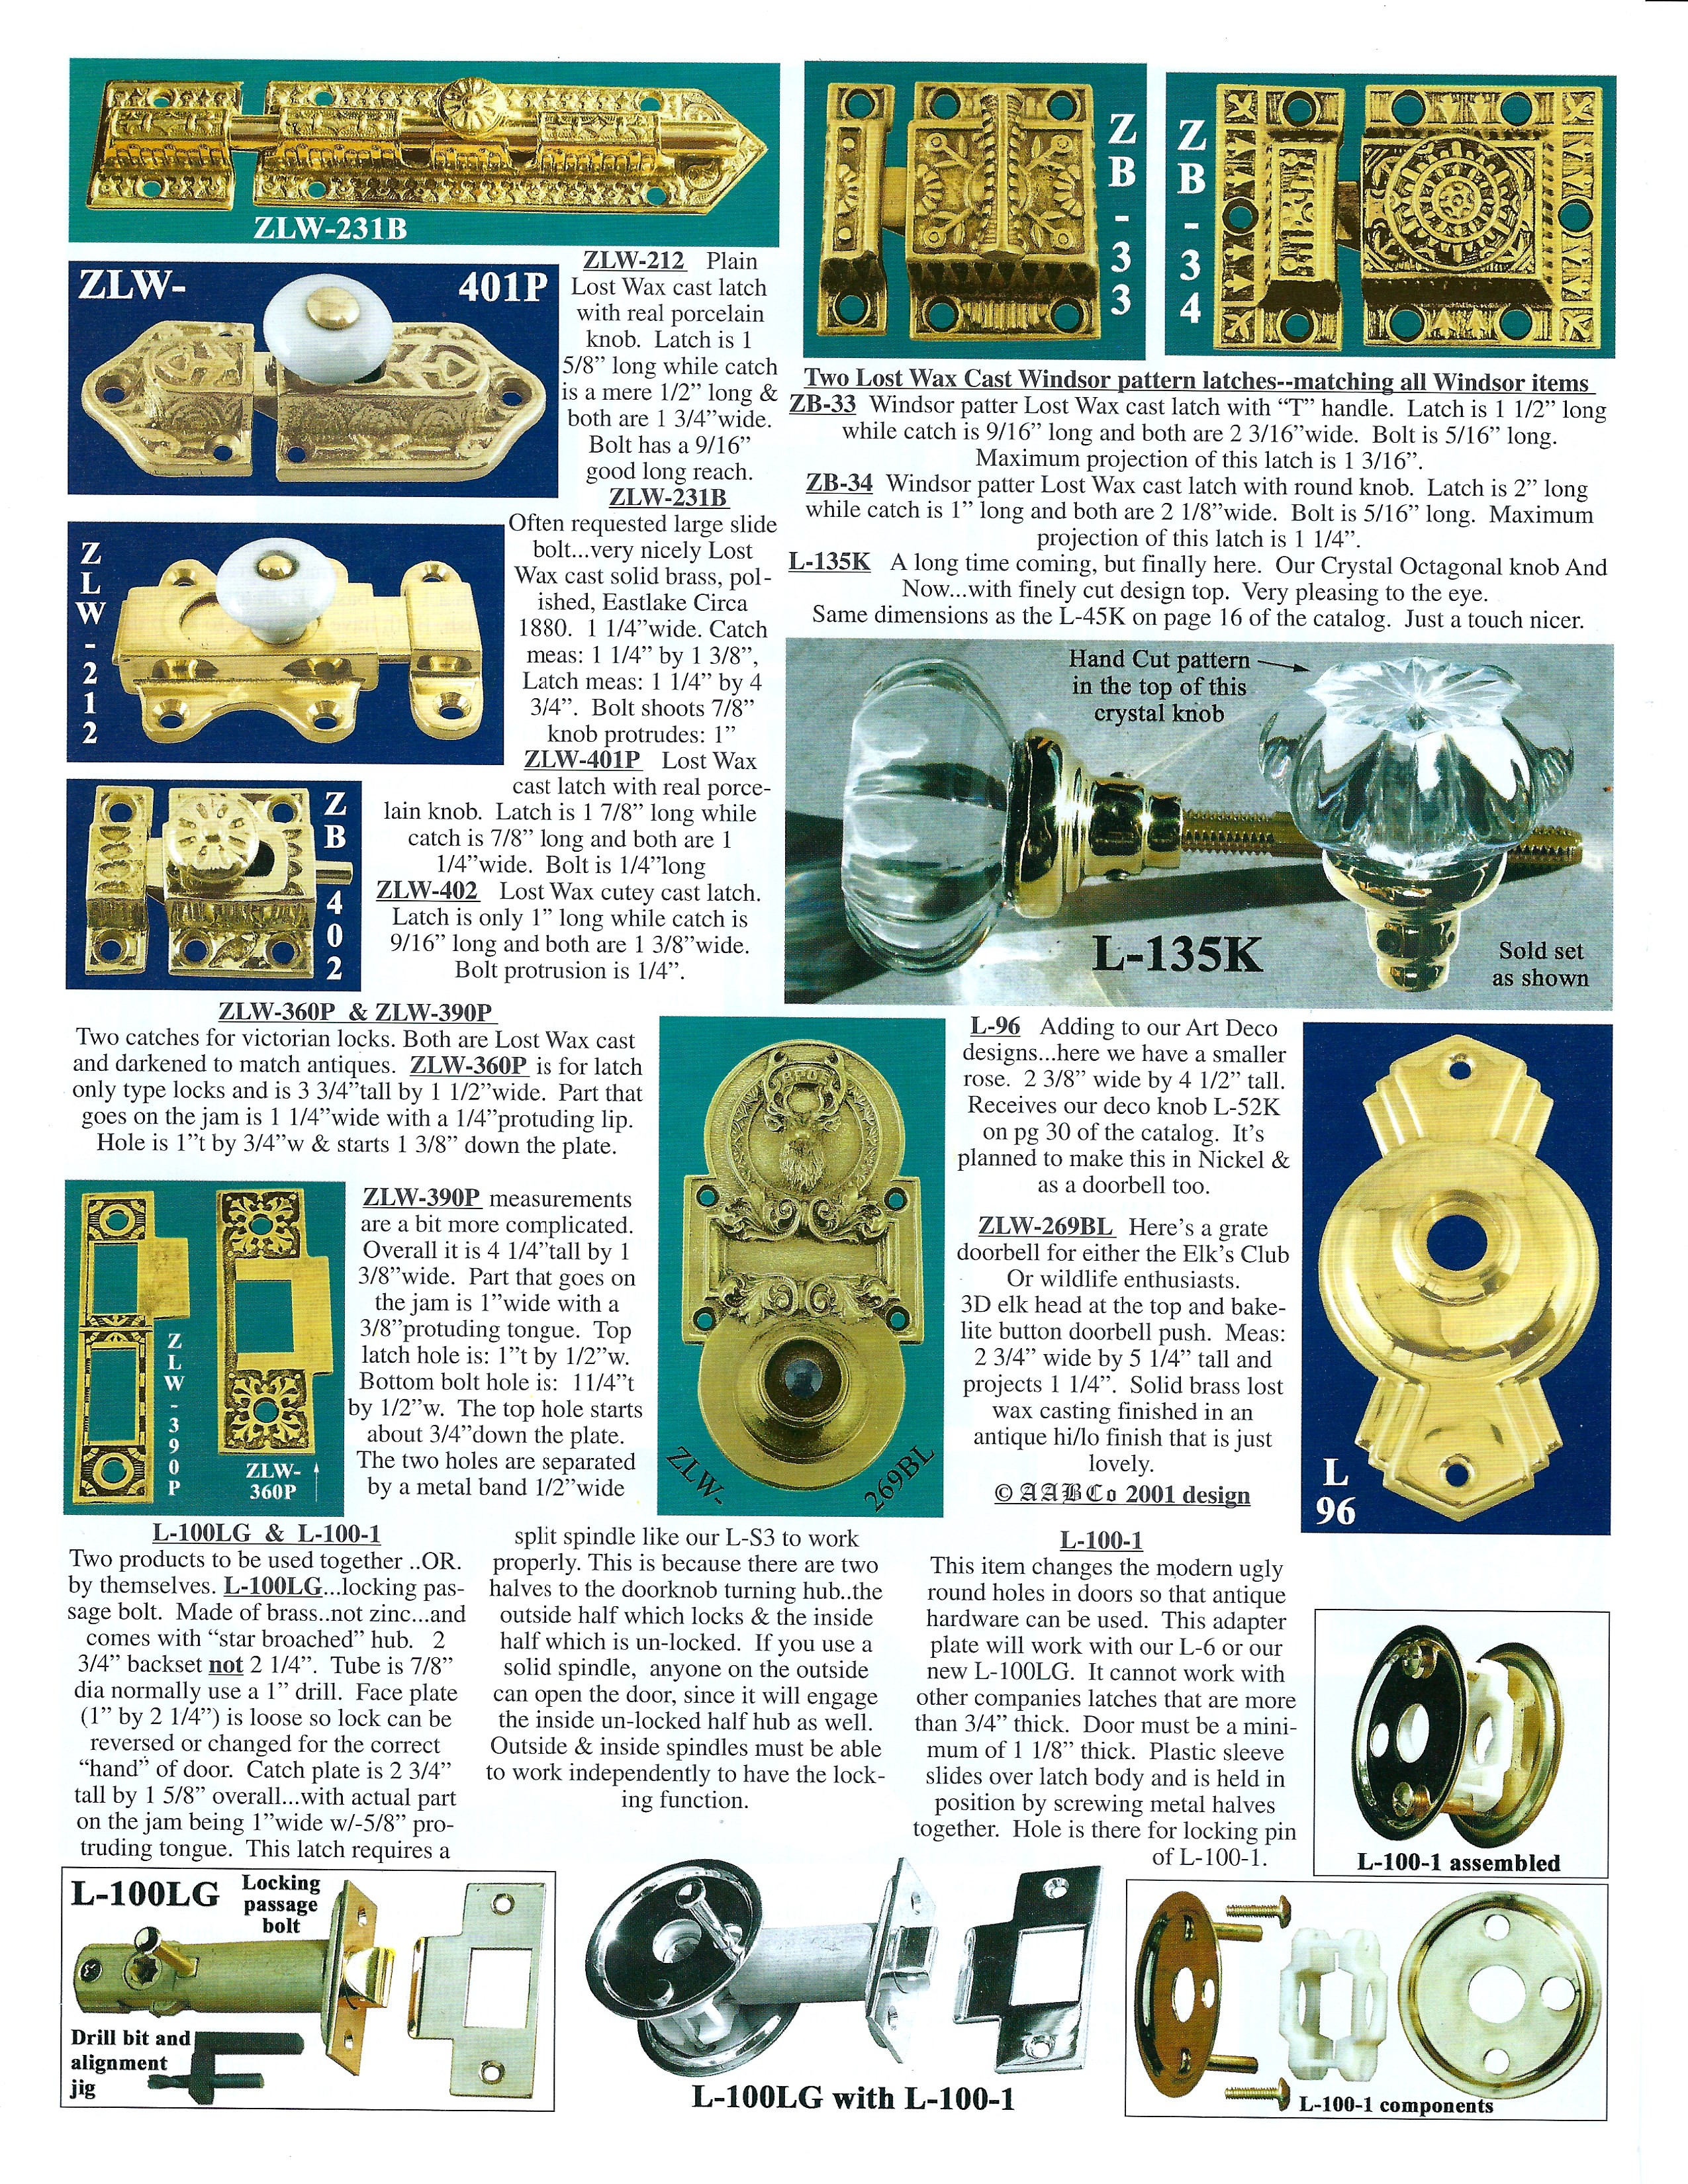 Catalog page 60